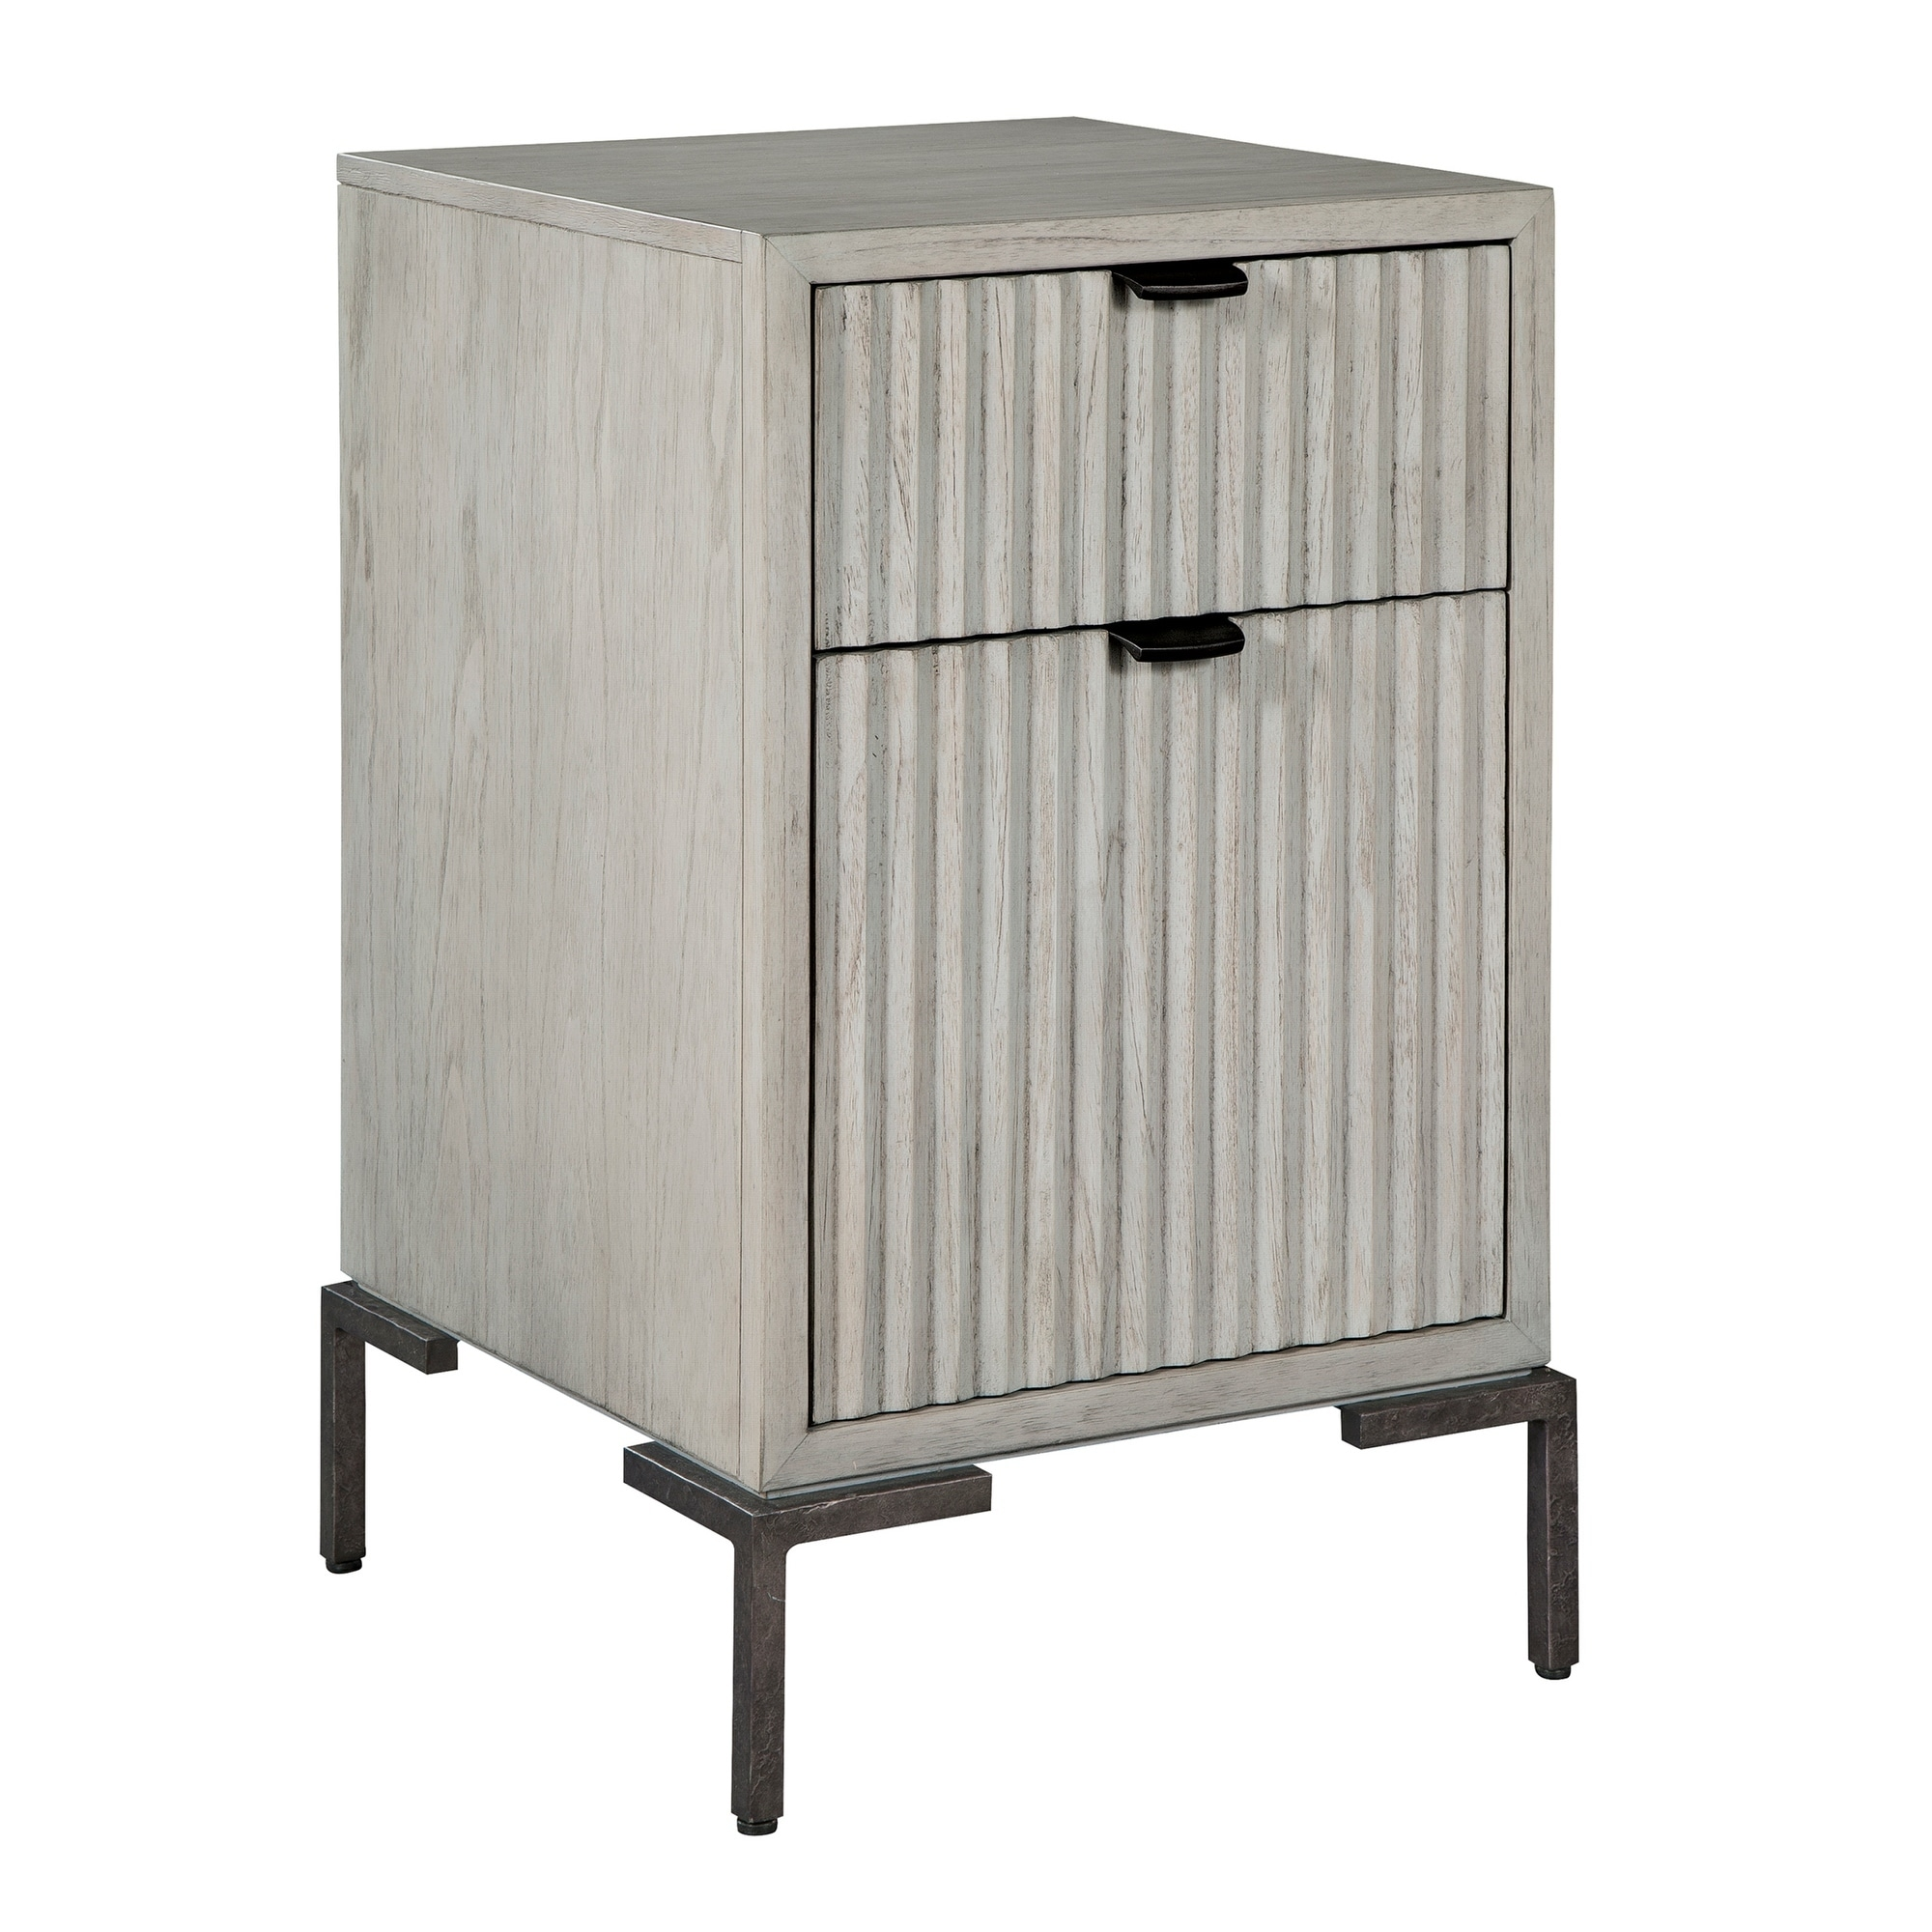 Hekman Furniture Office At Home File Modern Coastal Antique White Wood Narrow 2 Drawer Filing Cabinet Overstock 24229456